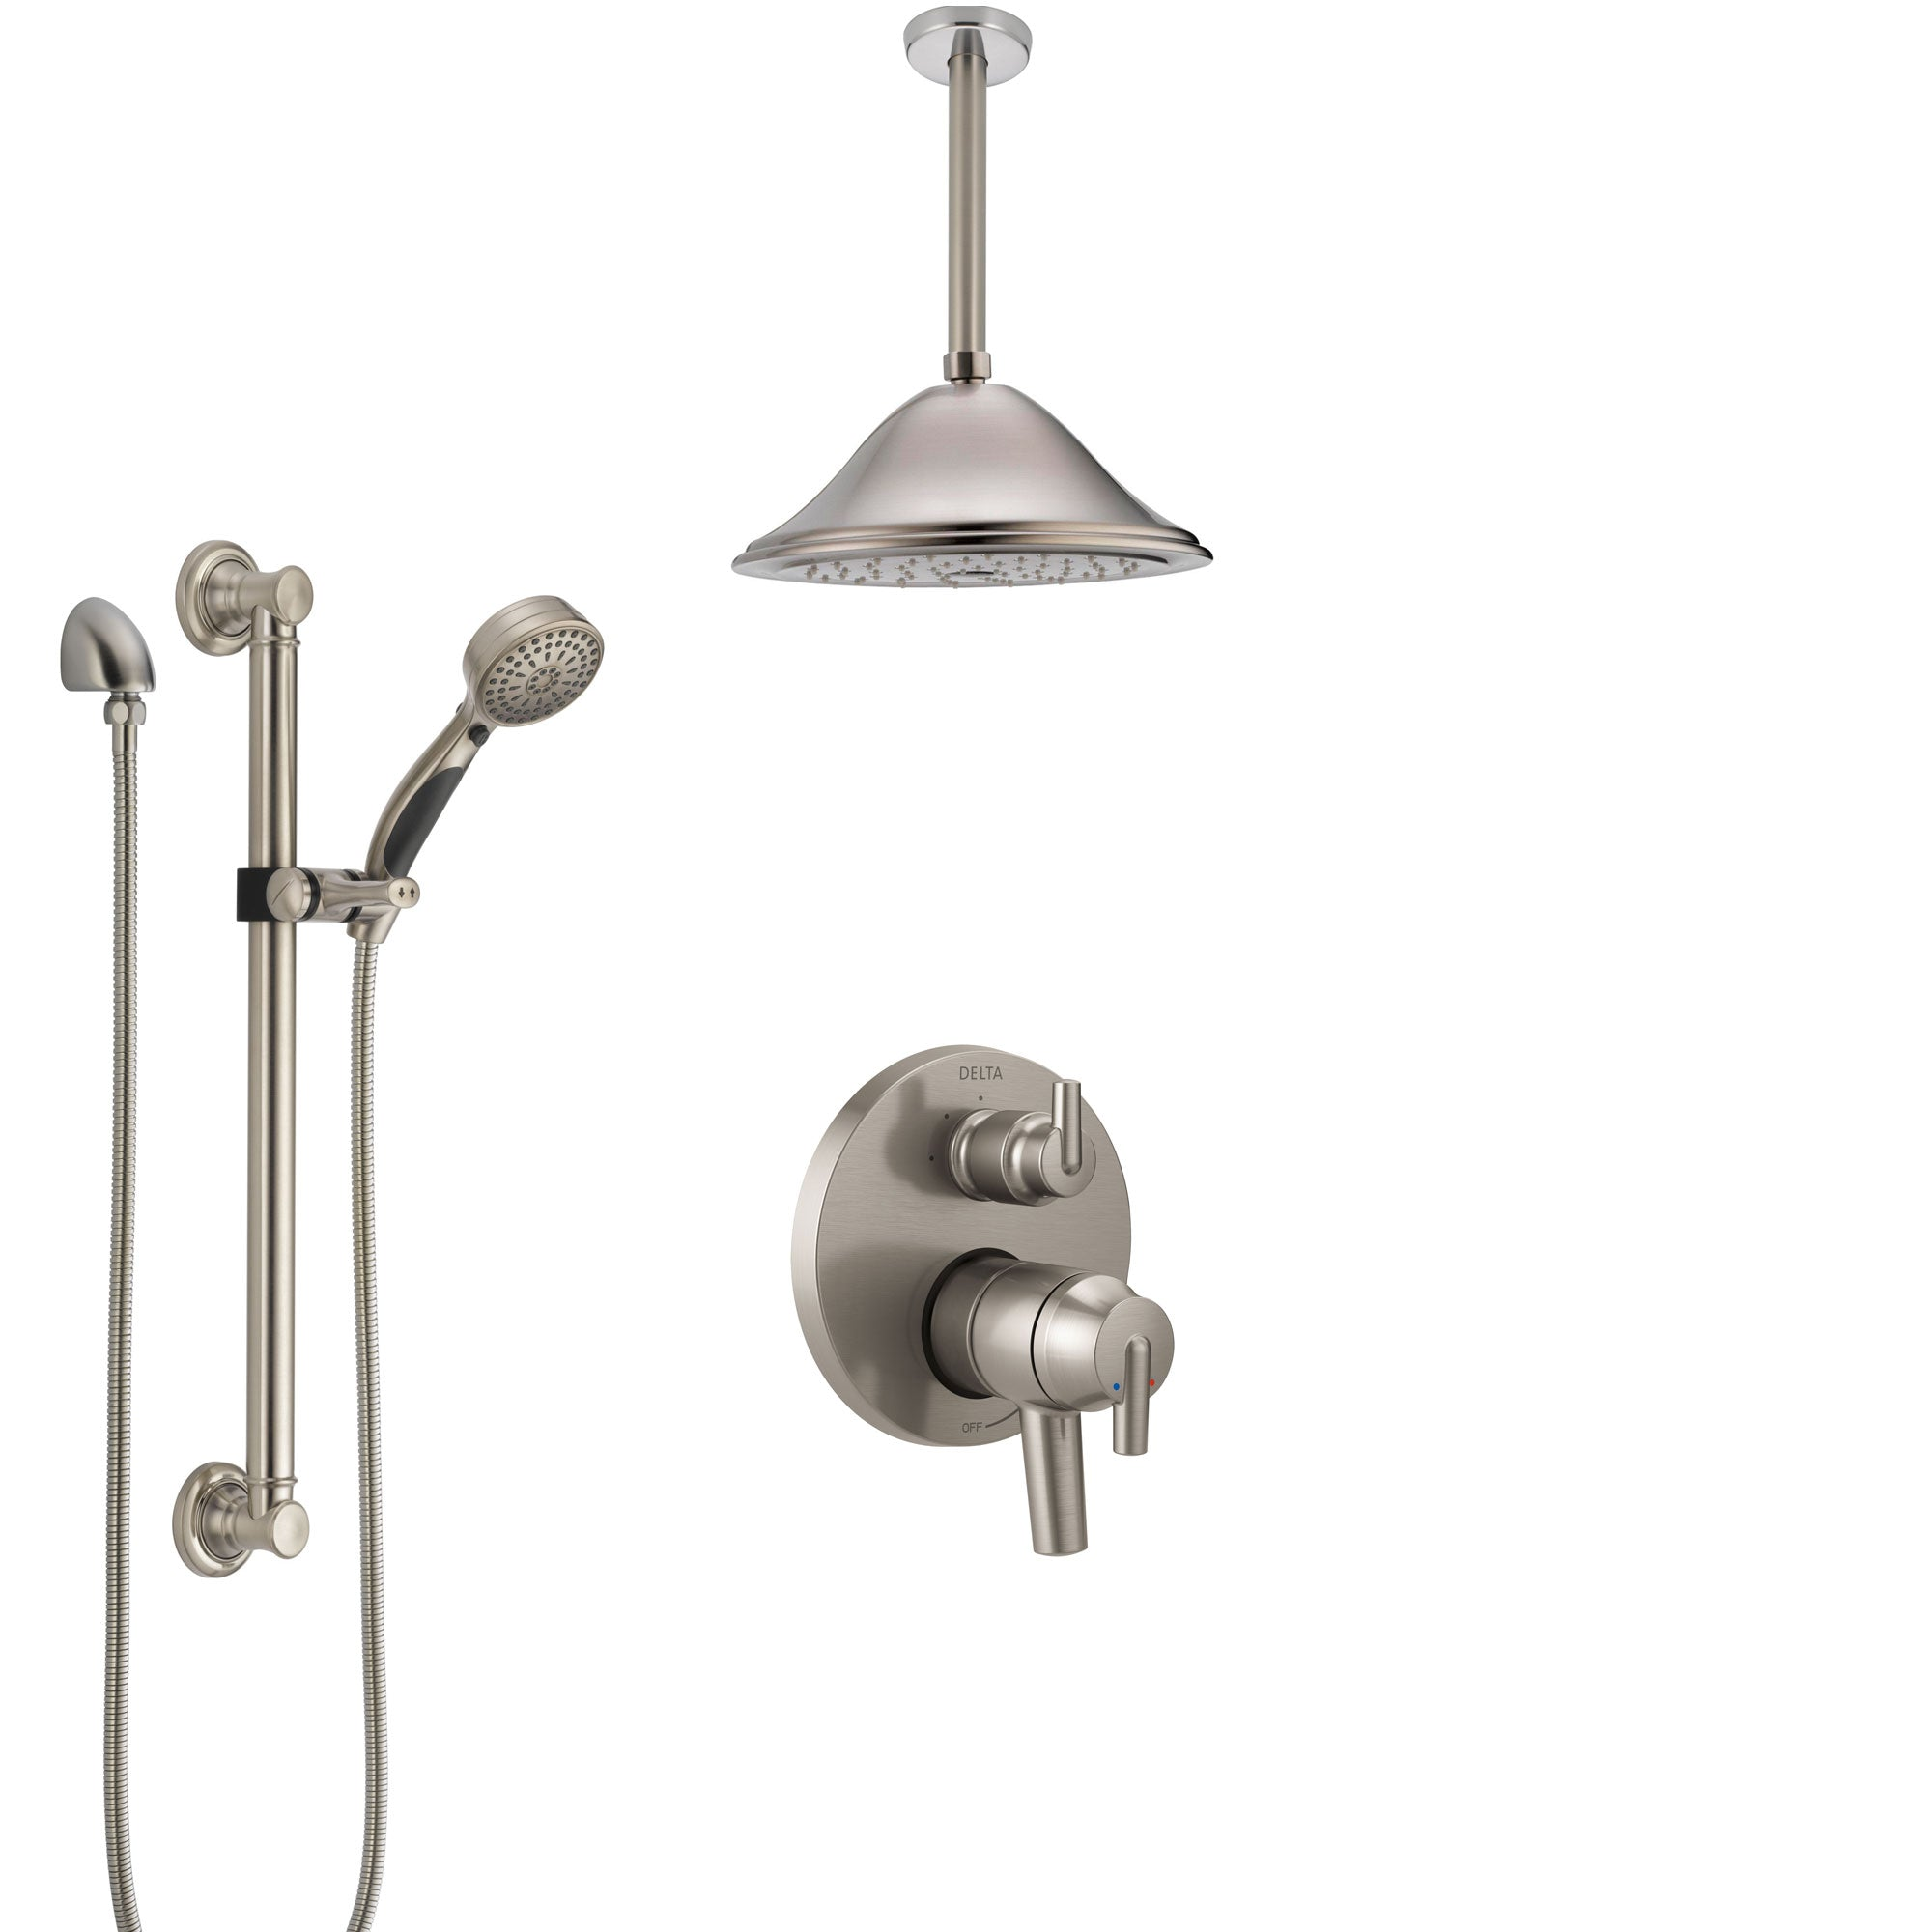 Delta Trinsic Dual Control Handle Stainless Steel Finish Integrated Diverter Shower System, Ceiling Showerhead, and Grab Bar Hand Shower SS27859SS7